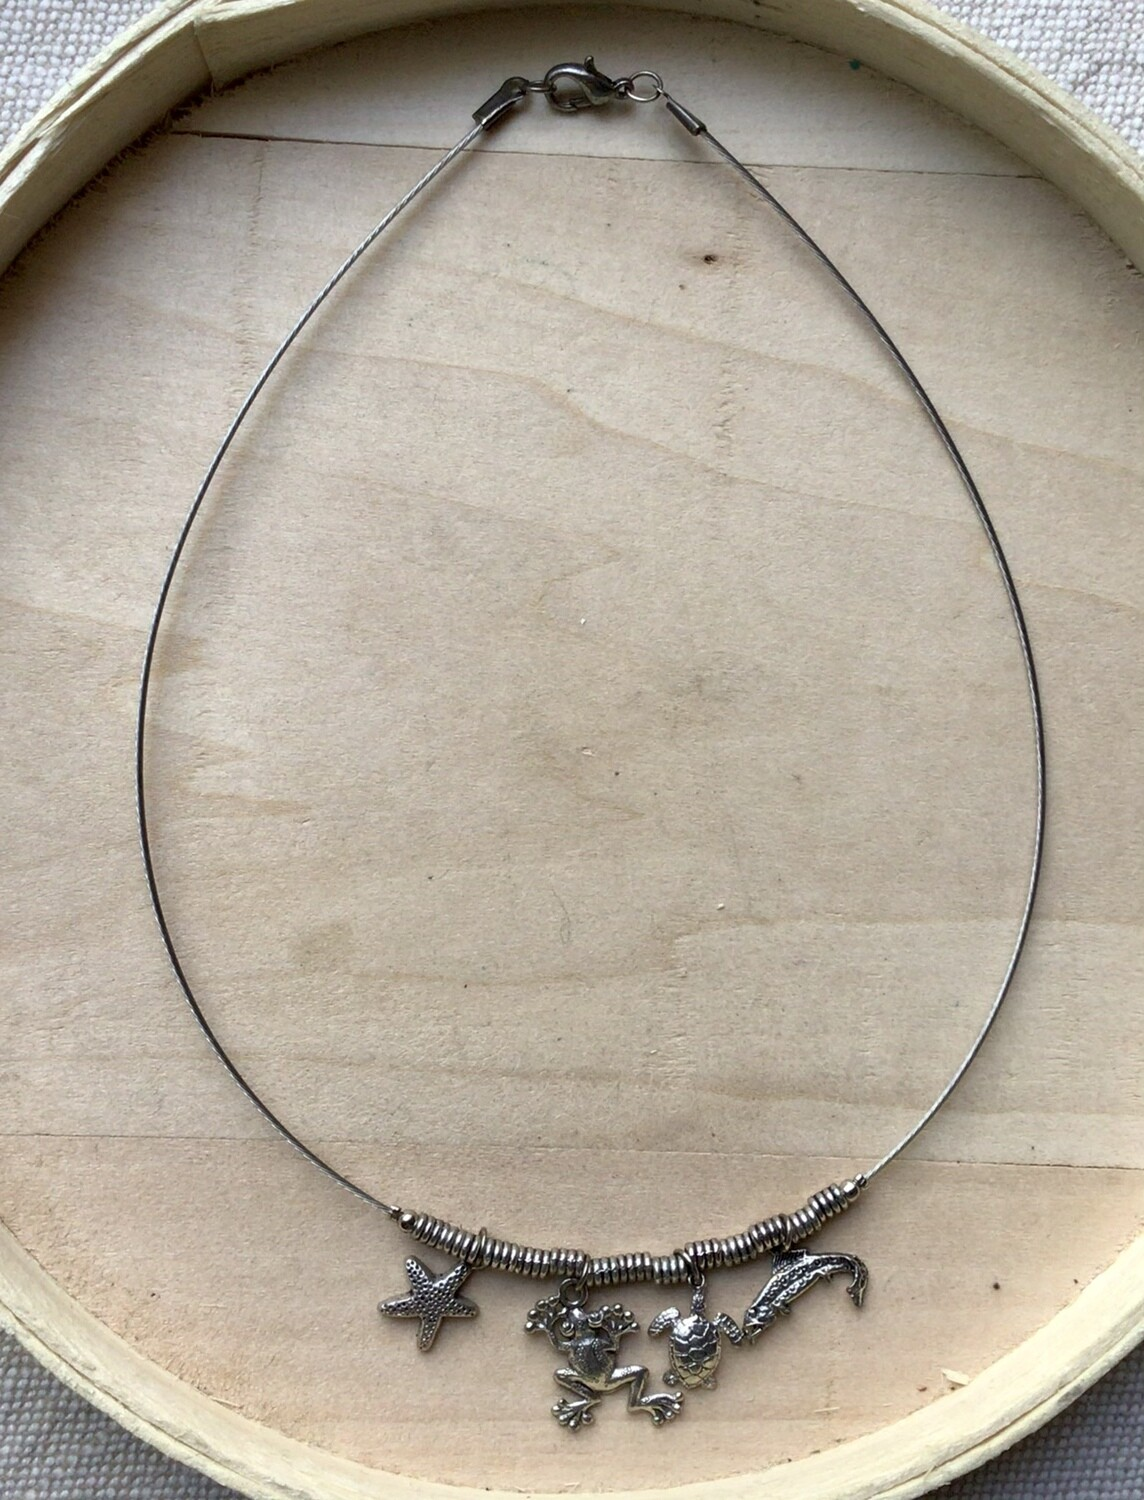 Necklace: Silver Animal Charms Choker